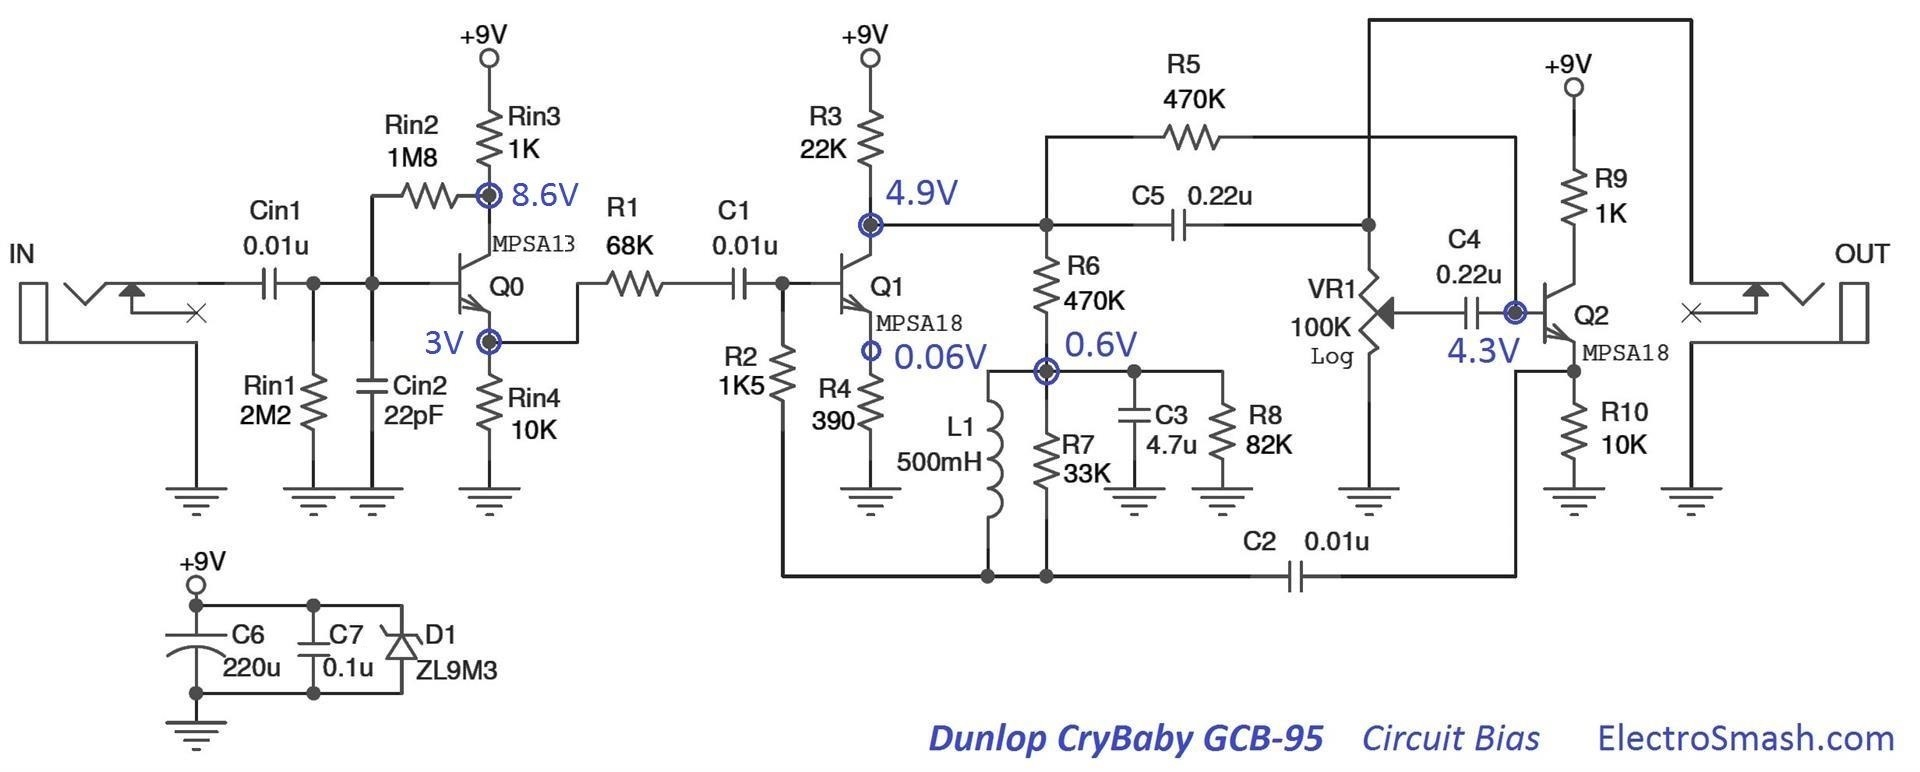 electrosmash dunlop crybaby gcb 95 circuit analysis door wiring diagram wah pedal wiring diagram #7